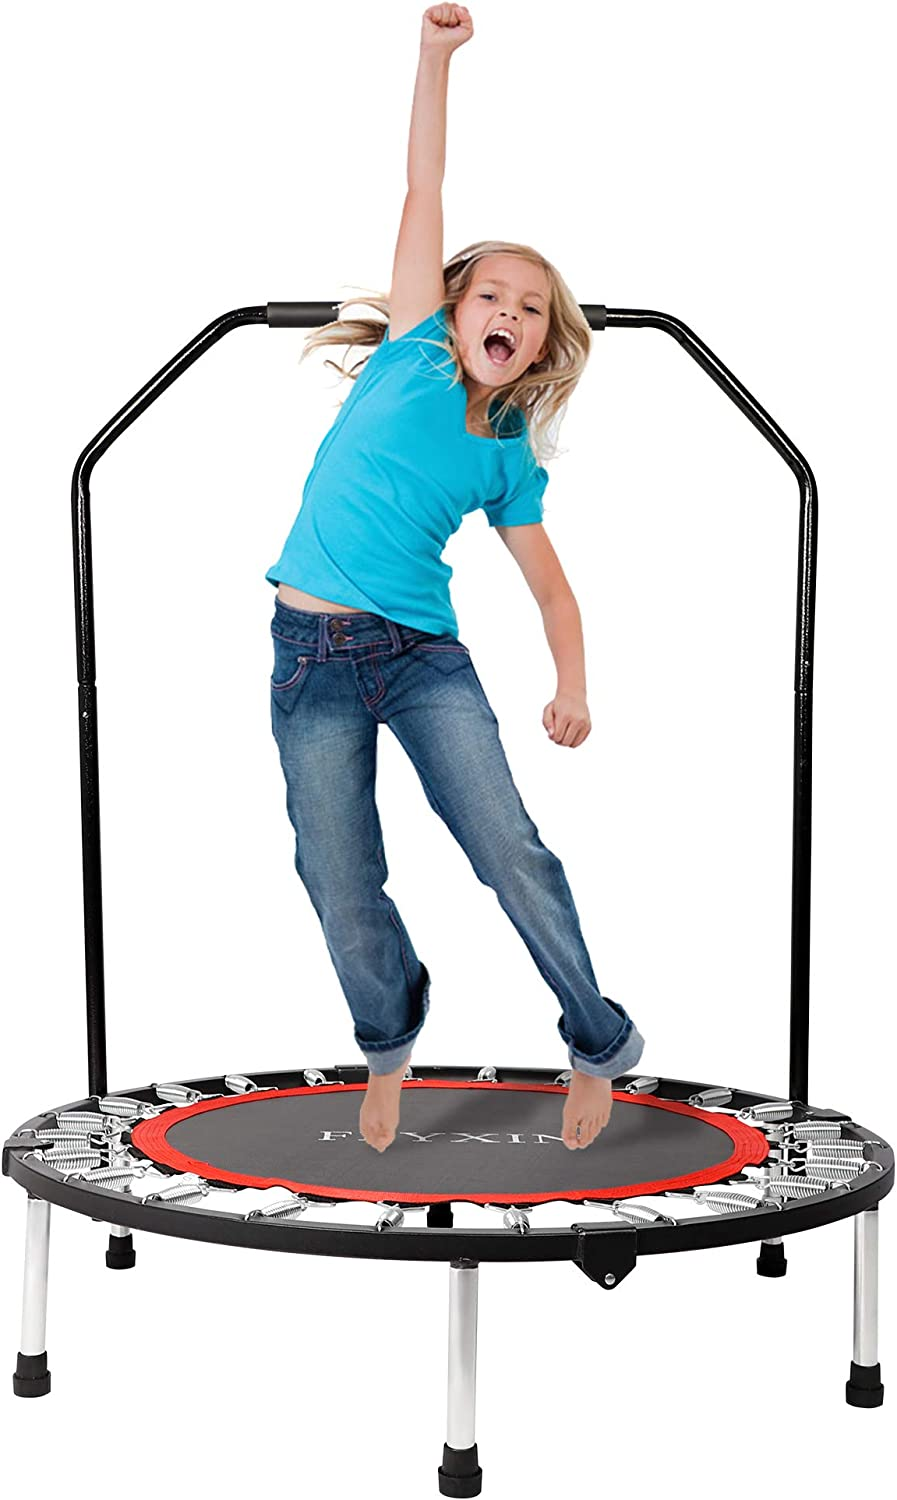 LONABR 40 Rebounder Mini Fitness Trampoline with Sponage Handle for Kids and Adults Indoor Outdoor Home/&Gym Exercise Workout